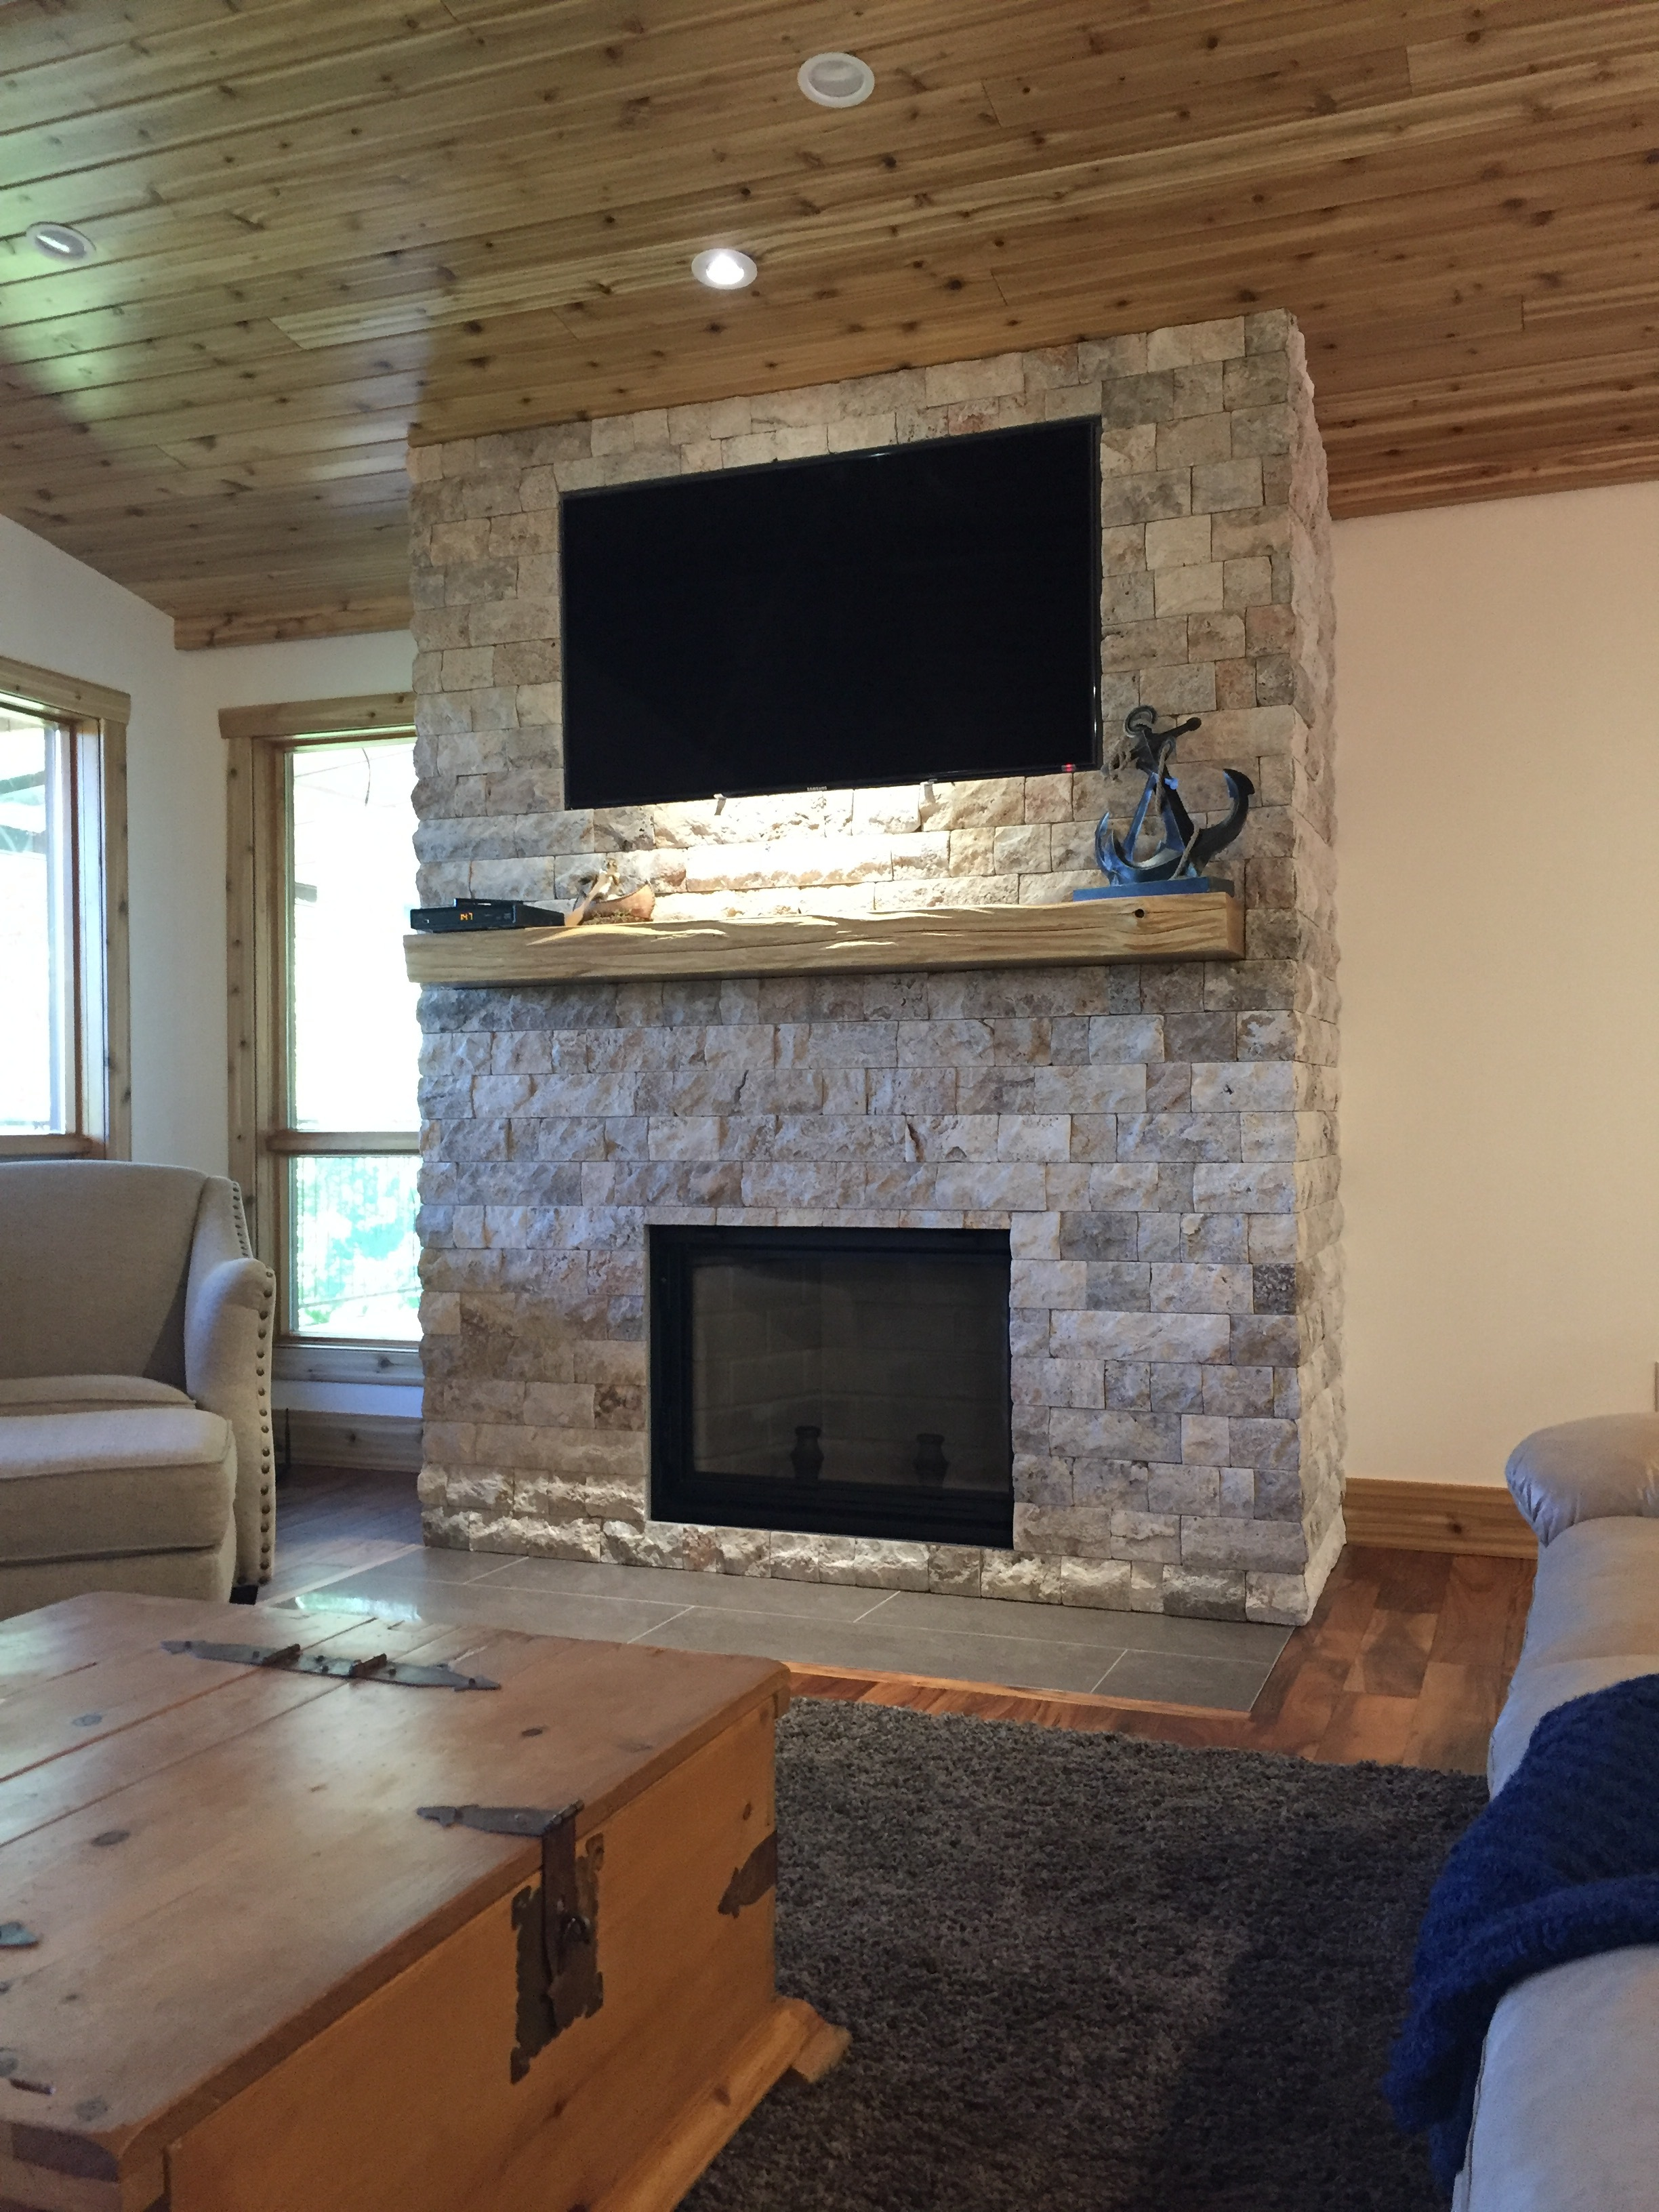 Rustic stone fireplace, live edge birch fireplace mantel, Kevin Clow and Blanchette Slate.